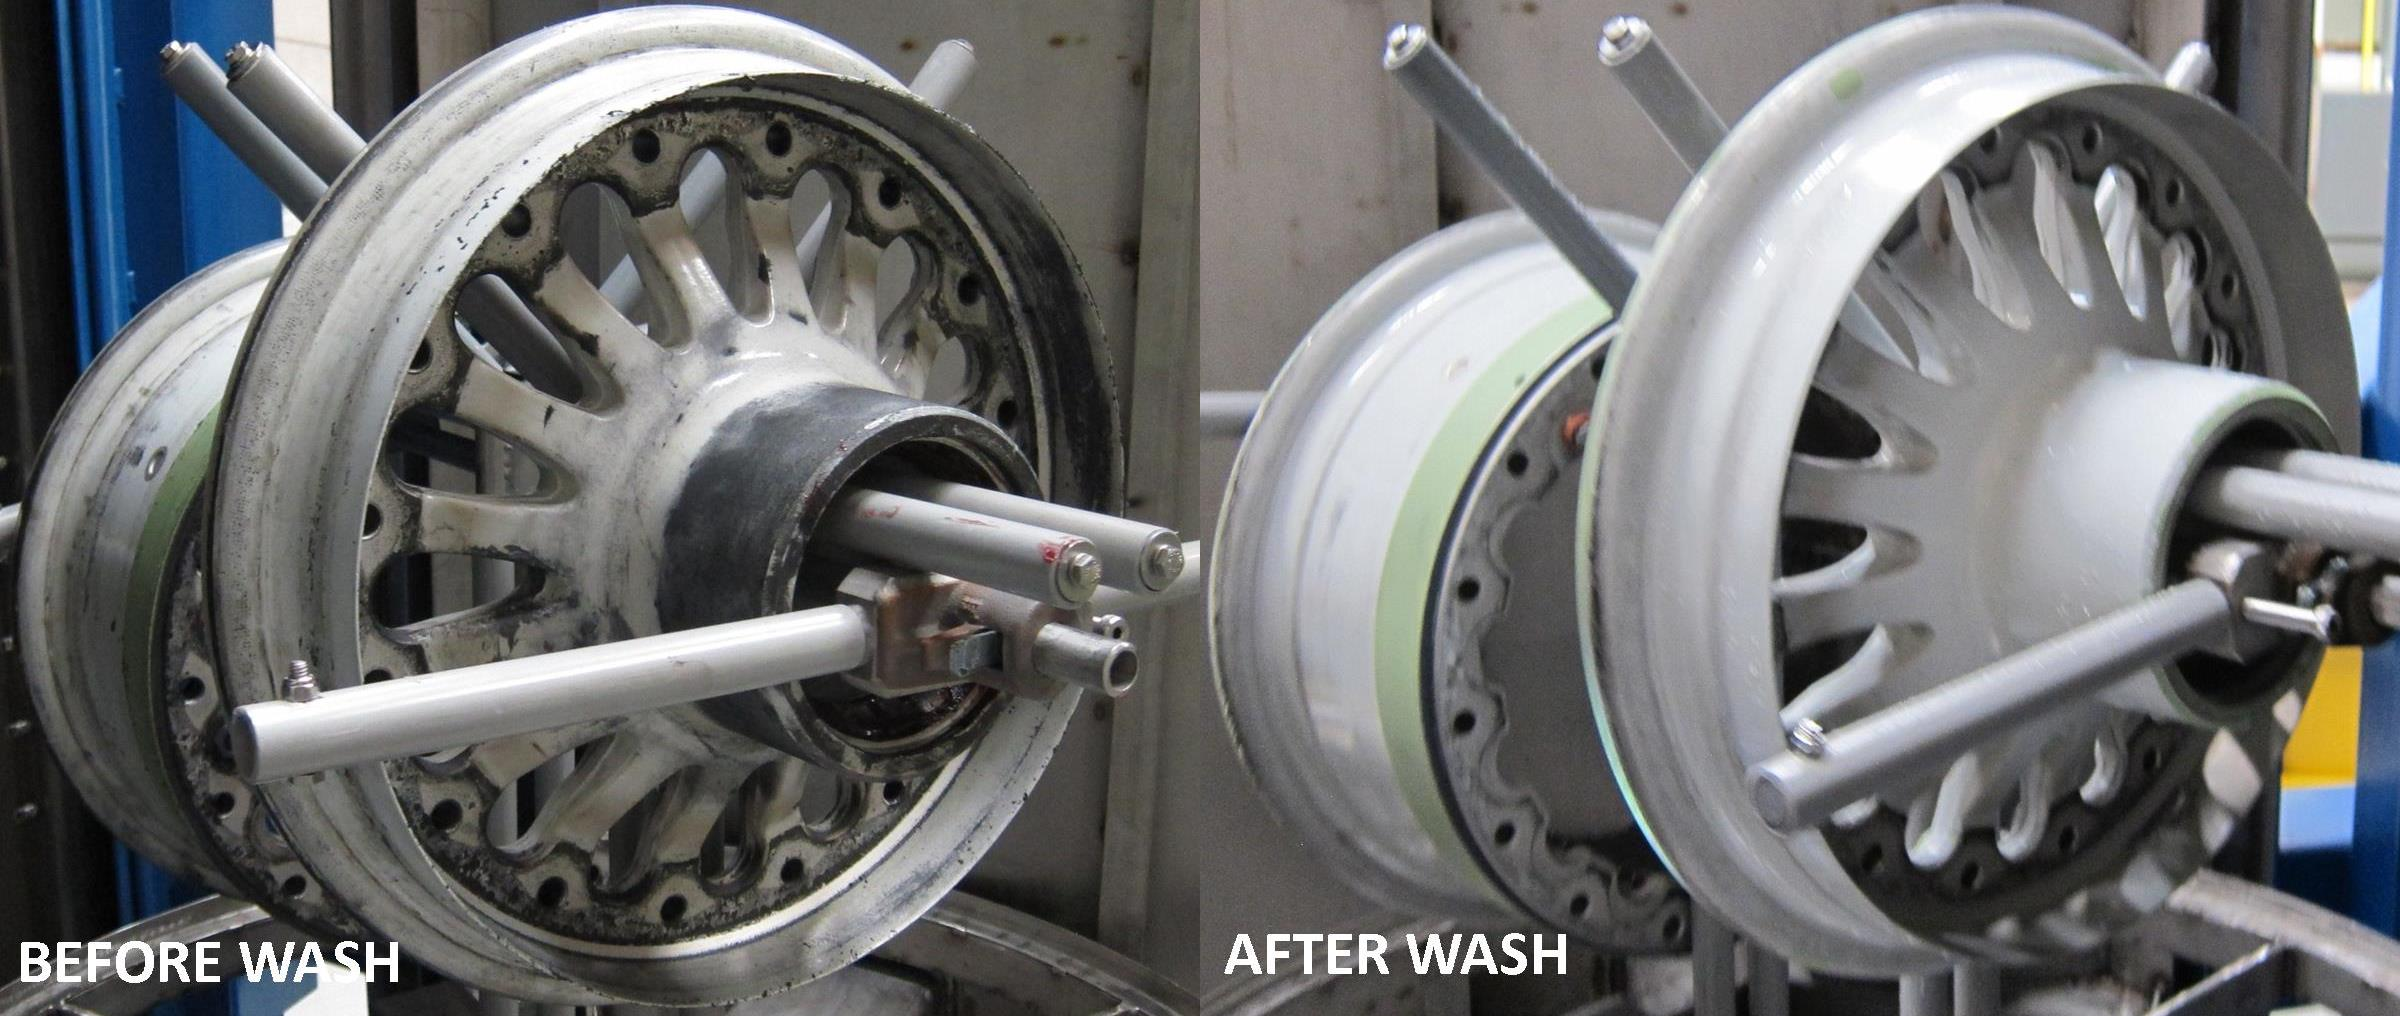 Aircraft Wheels Cleaning Results StingRay Aqueous Parts Washer